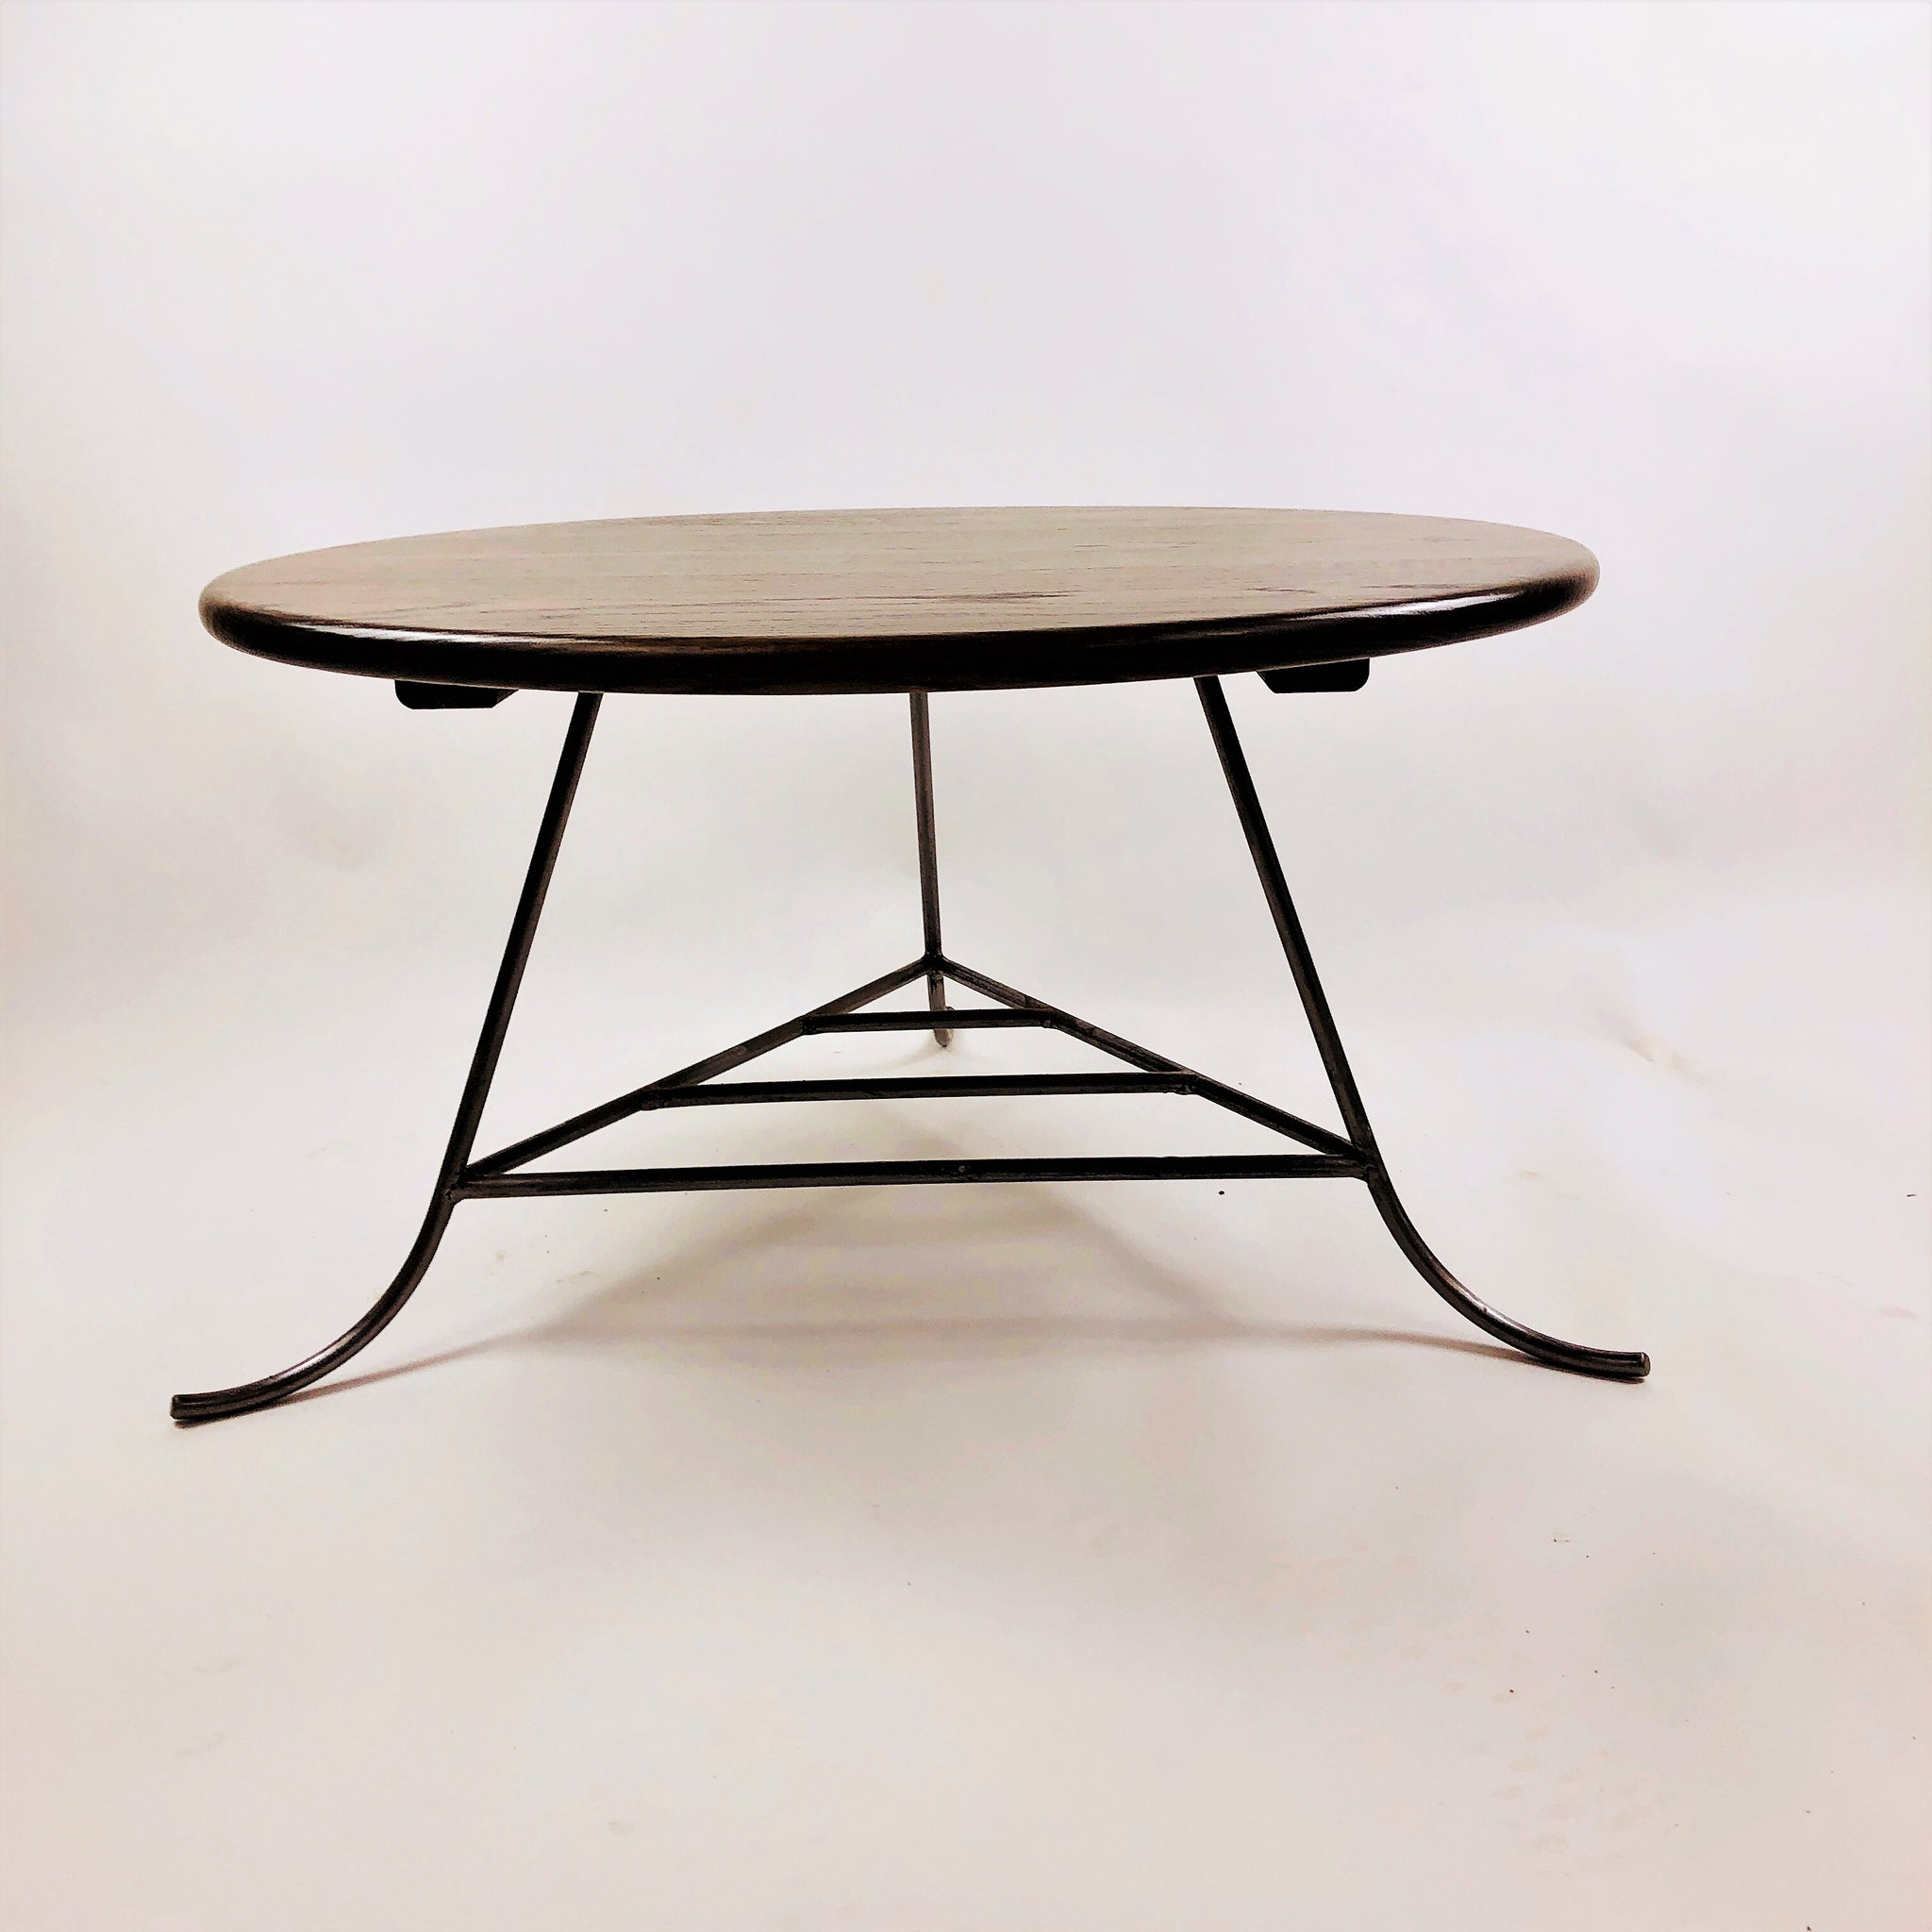 - Red Oak Circular Coffee Table With Hand-Welded Silver Steel Legs